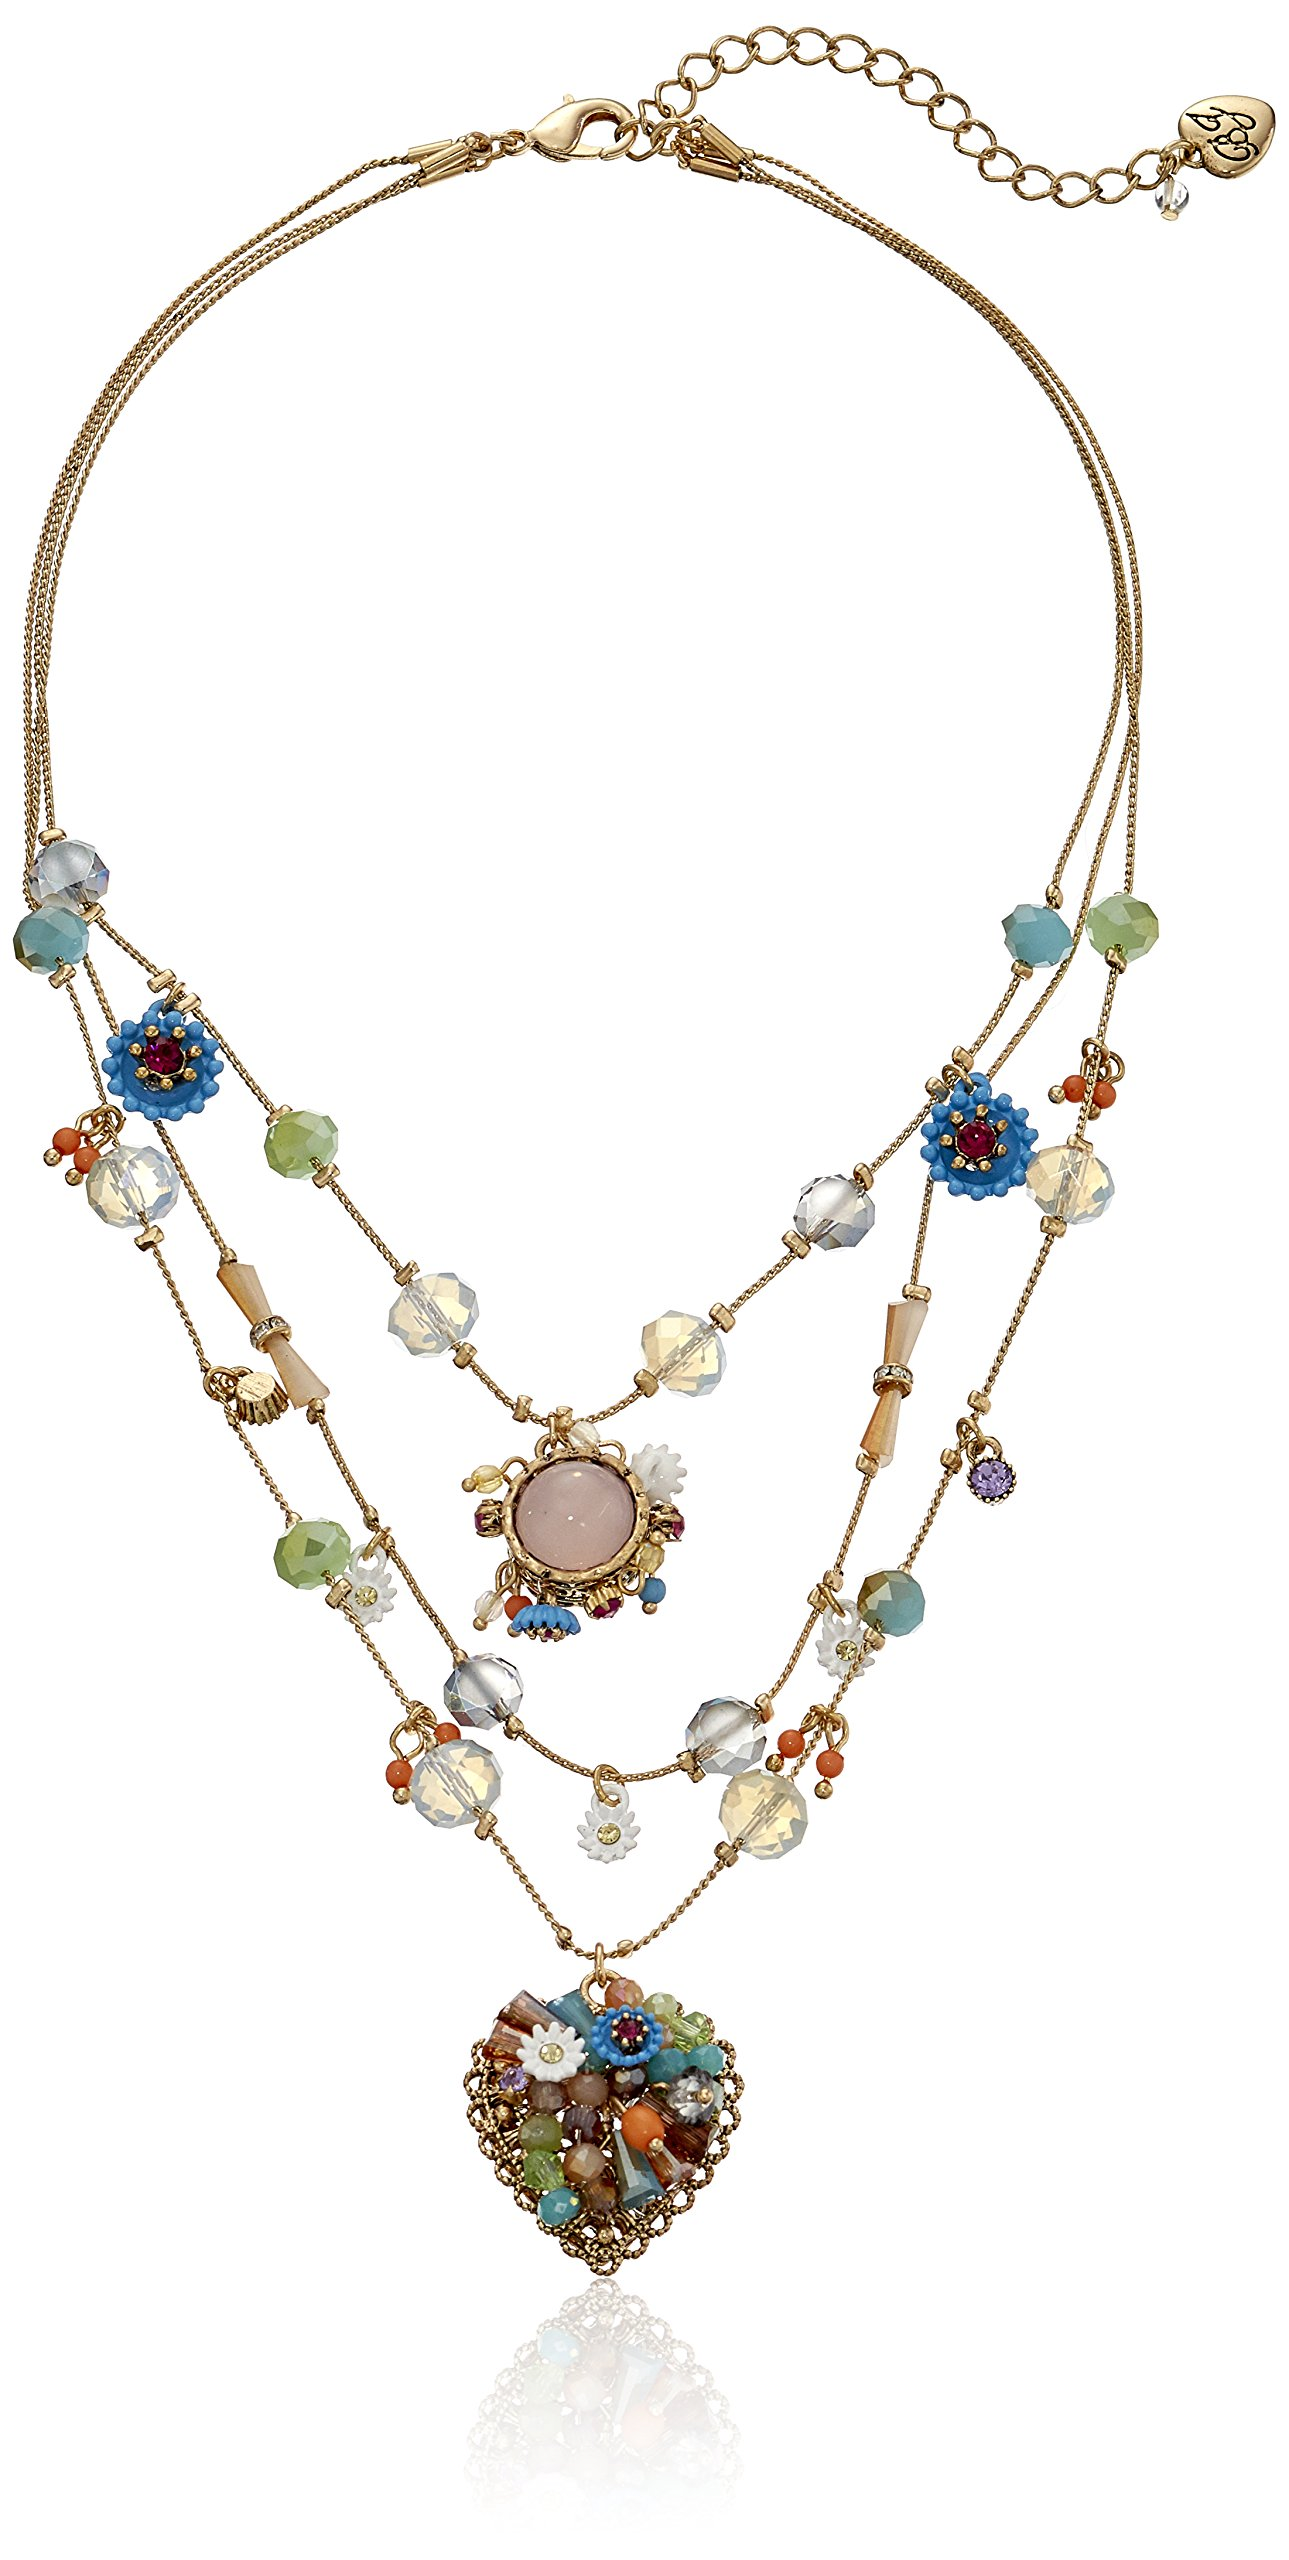 Betsey Johnson ''Weave and Sew Woven Mixed Multi-Colored Bead Flower Heart Illusion Necklace by Betsey Johnson